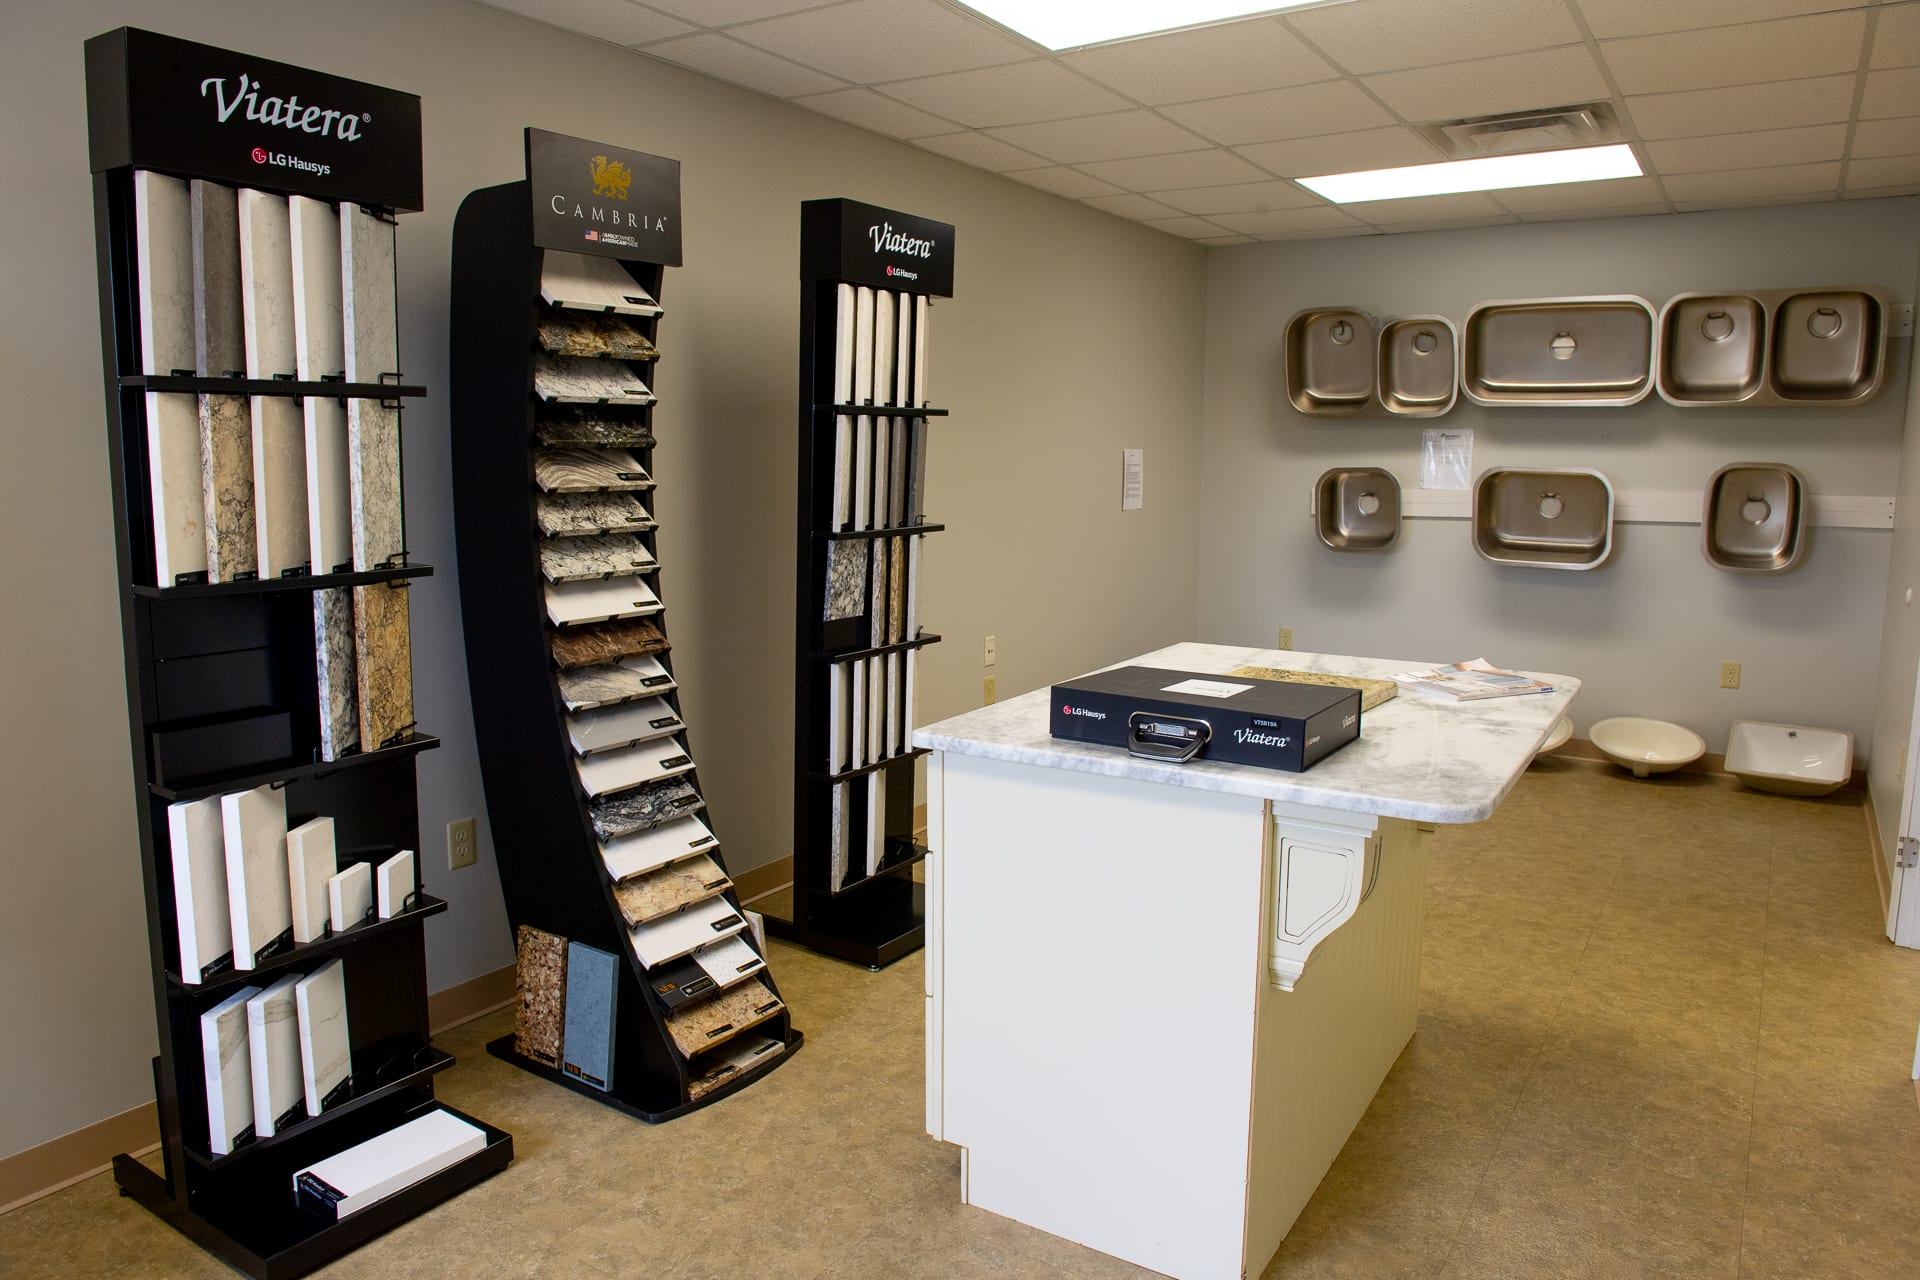 Countertop and sink gallery - by Magnolia Countertops. A Countertop fabricator of Granite Countertops, Marble Countertops, and Quartz Countertops in Cookeville and Crossville TN.